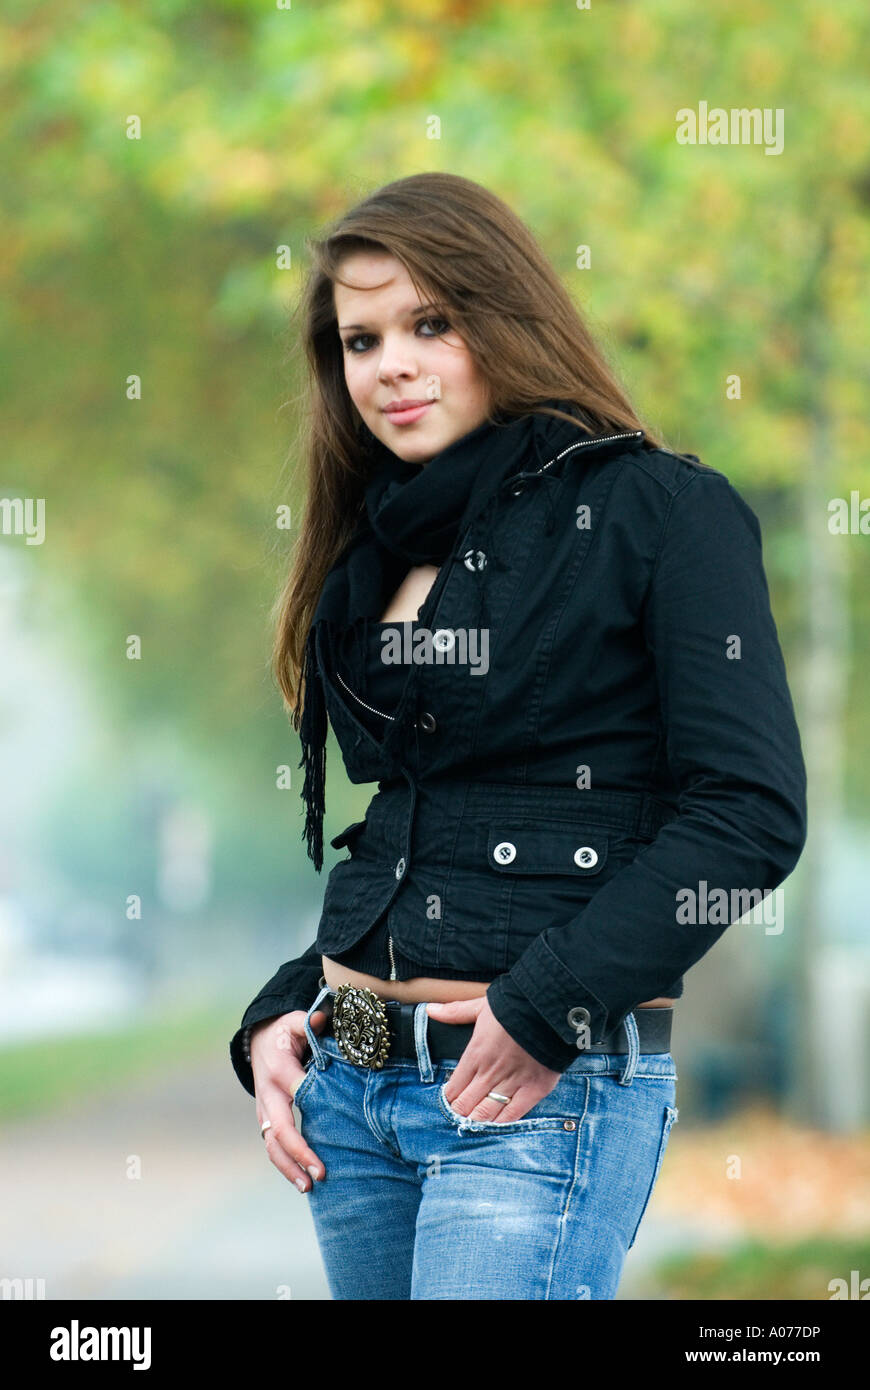 16 Year Old Girl With Brown Hair Outside In Autumn Stock